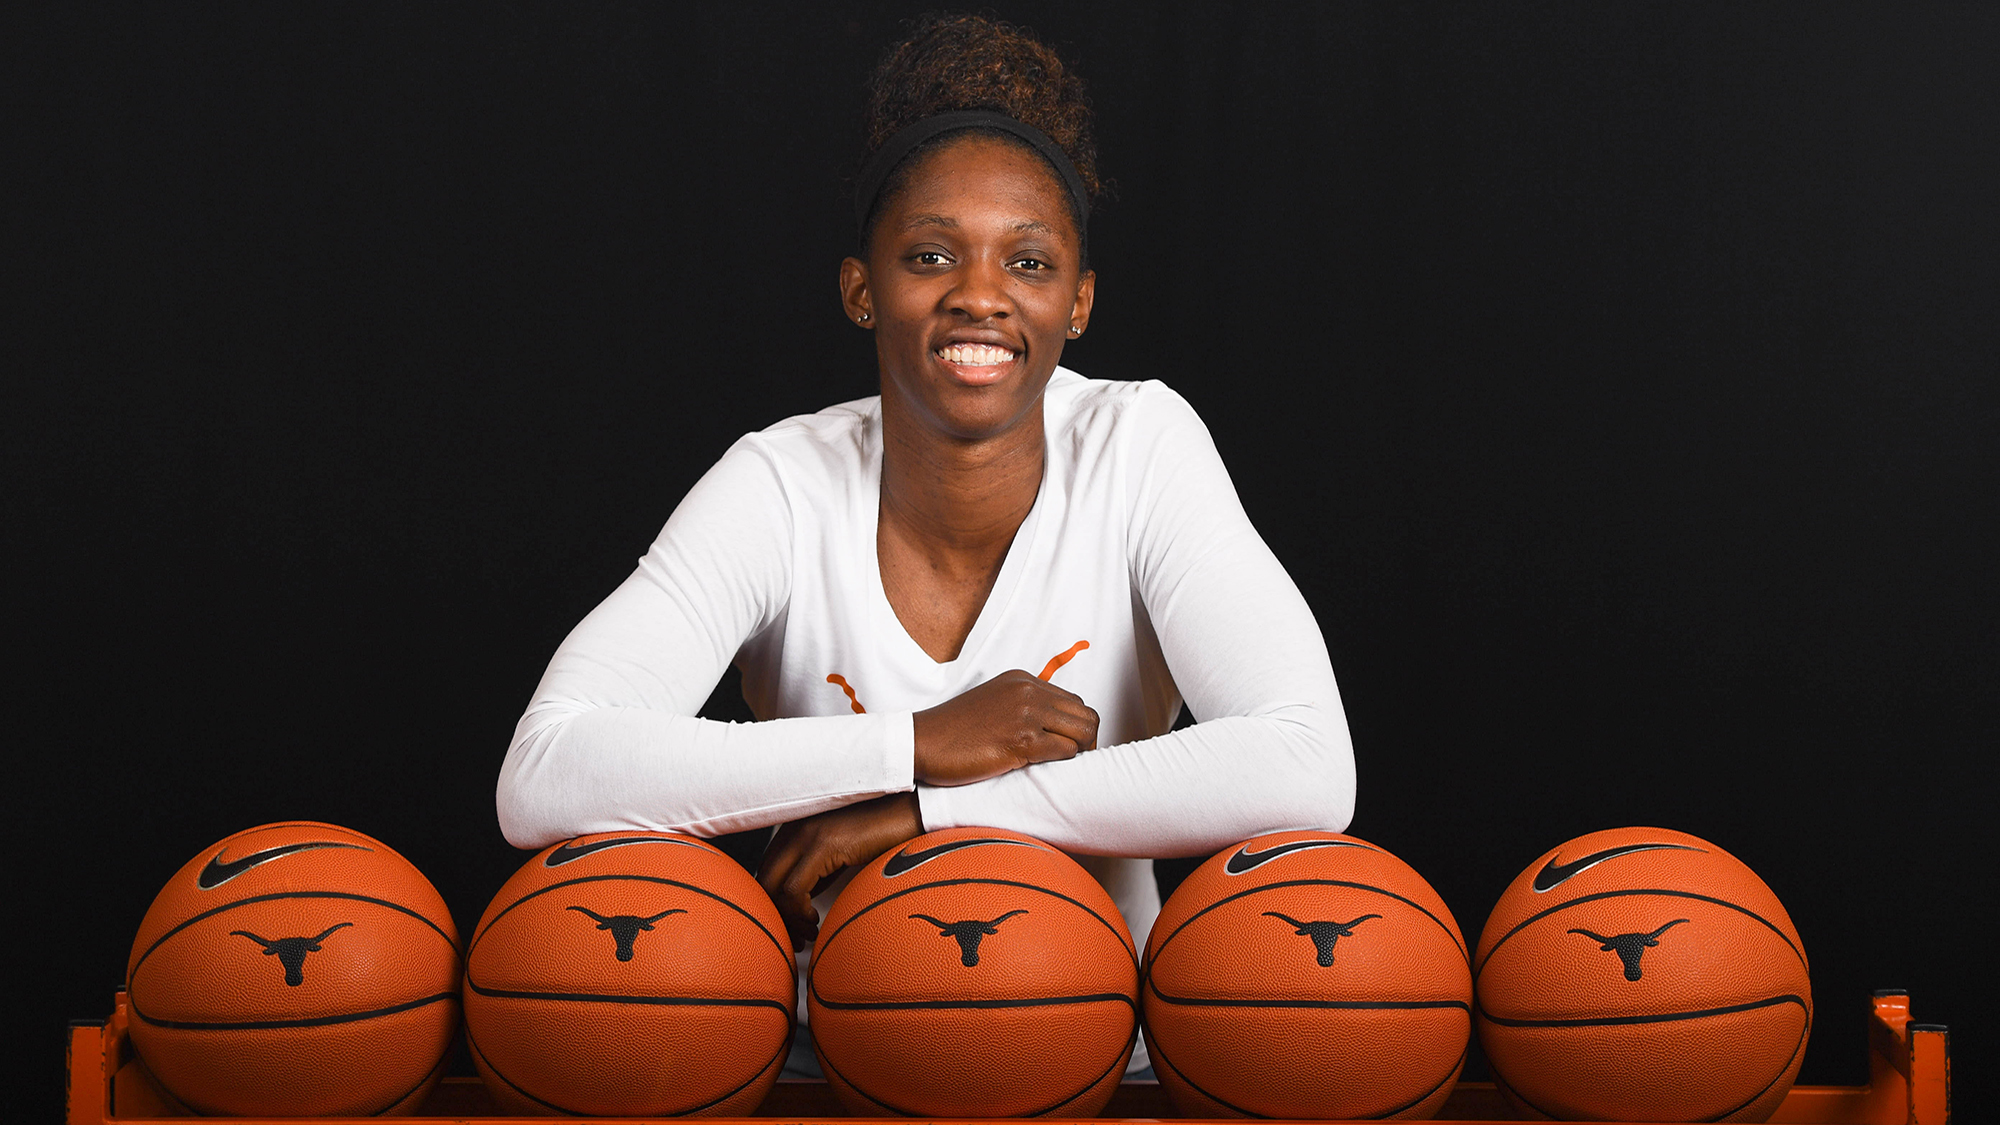 Higgs eligible to compete for Women's Basketball in 2019-20